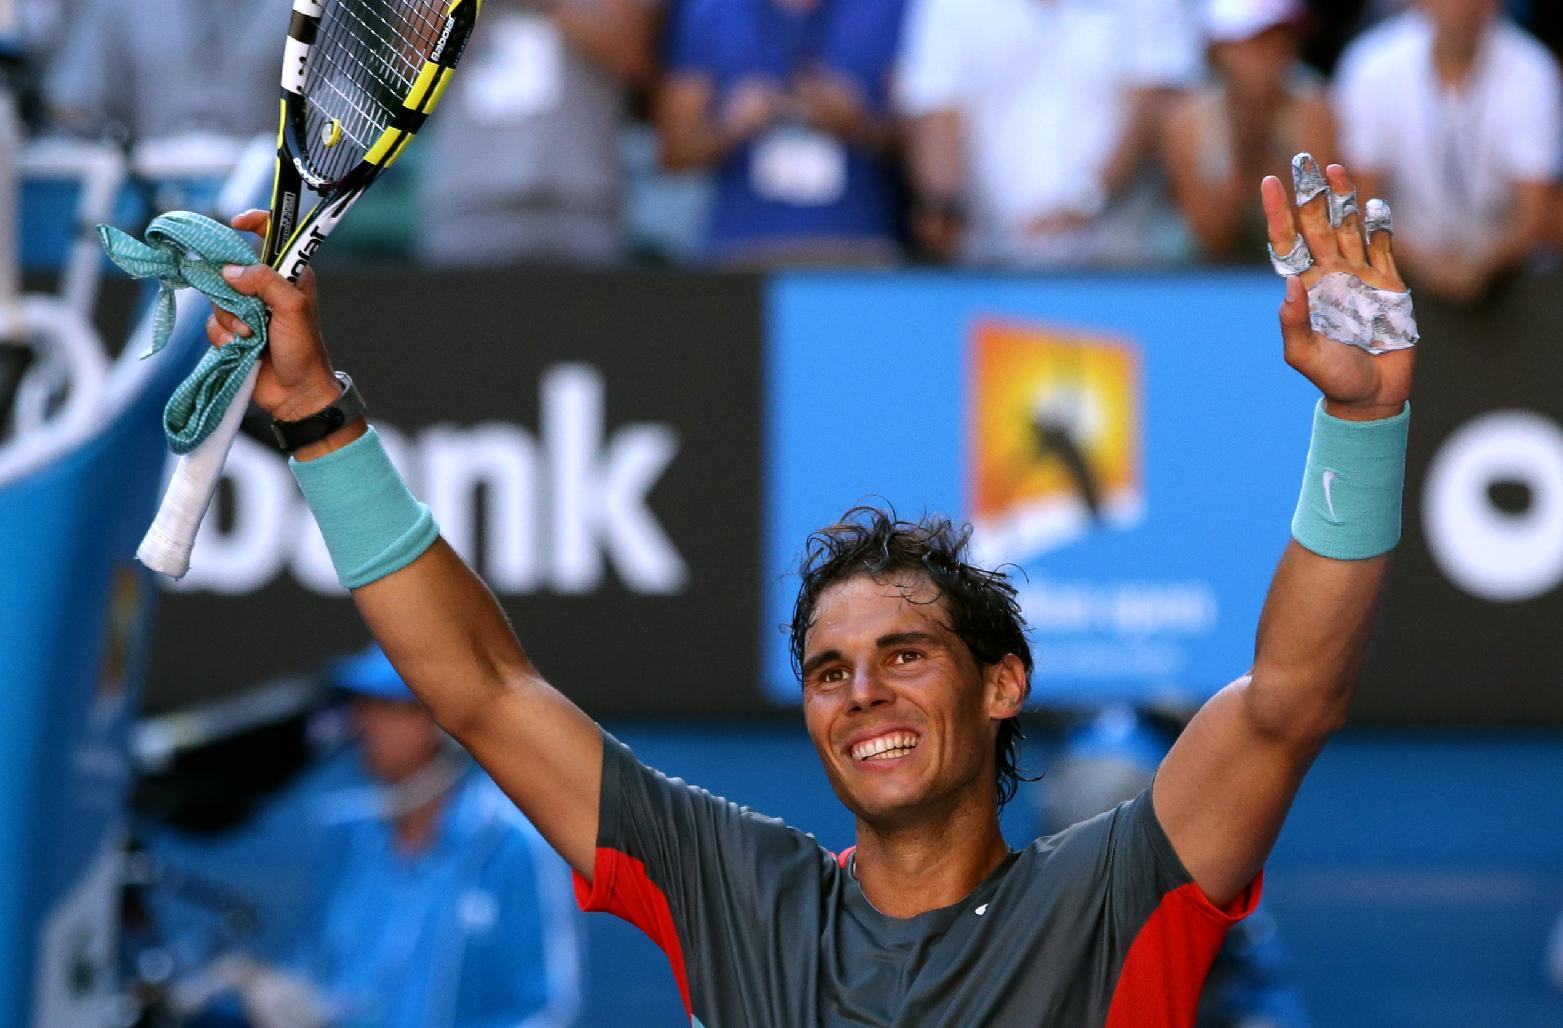 Rafael Nadal of Spain celebrates after defeating Grigor Dimitrov of Bulgaria during their quarterfinal at the Australian Open tennis championship in Melbourne, Australia, Wednesday, Jan. 22, 2014